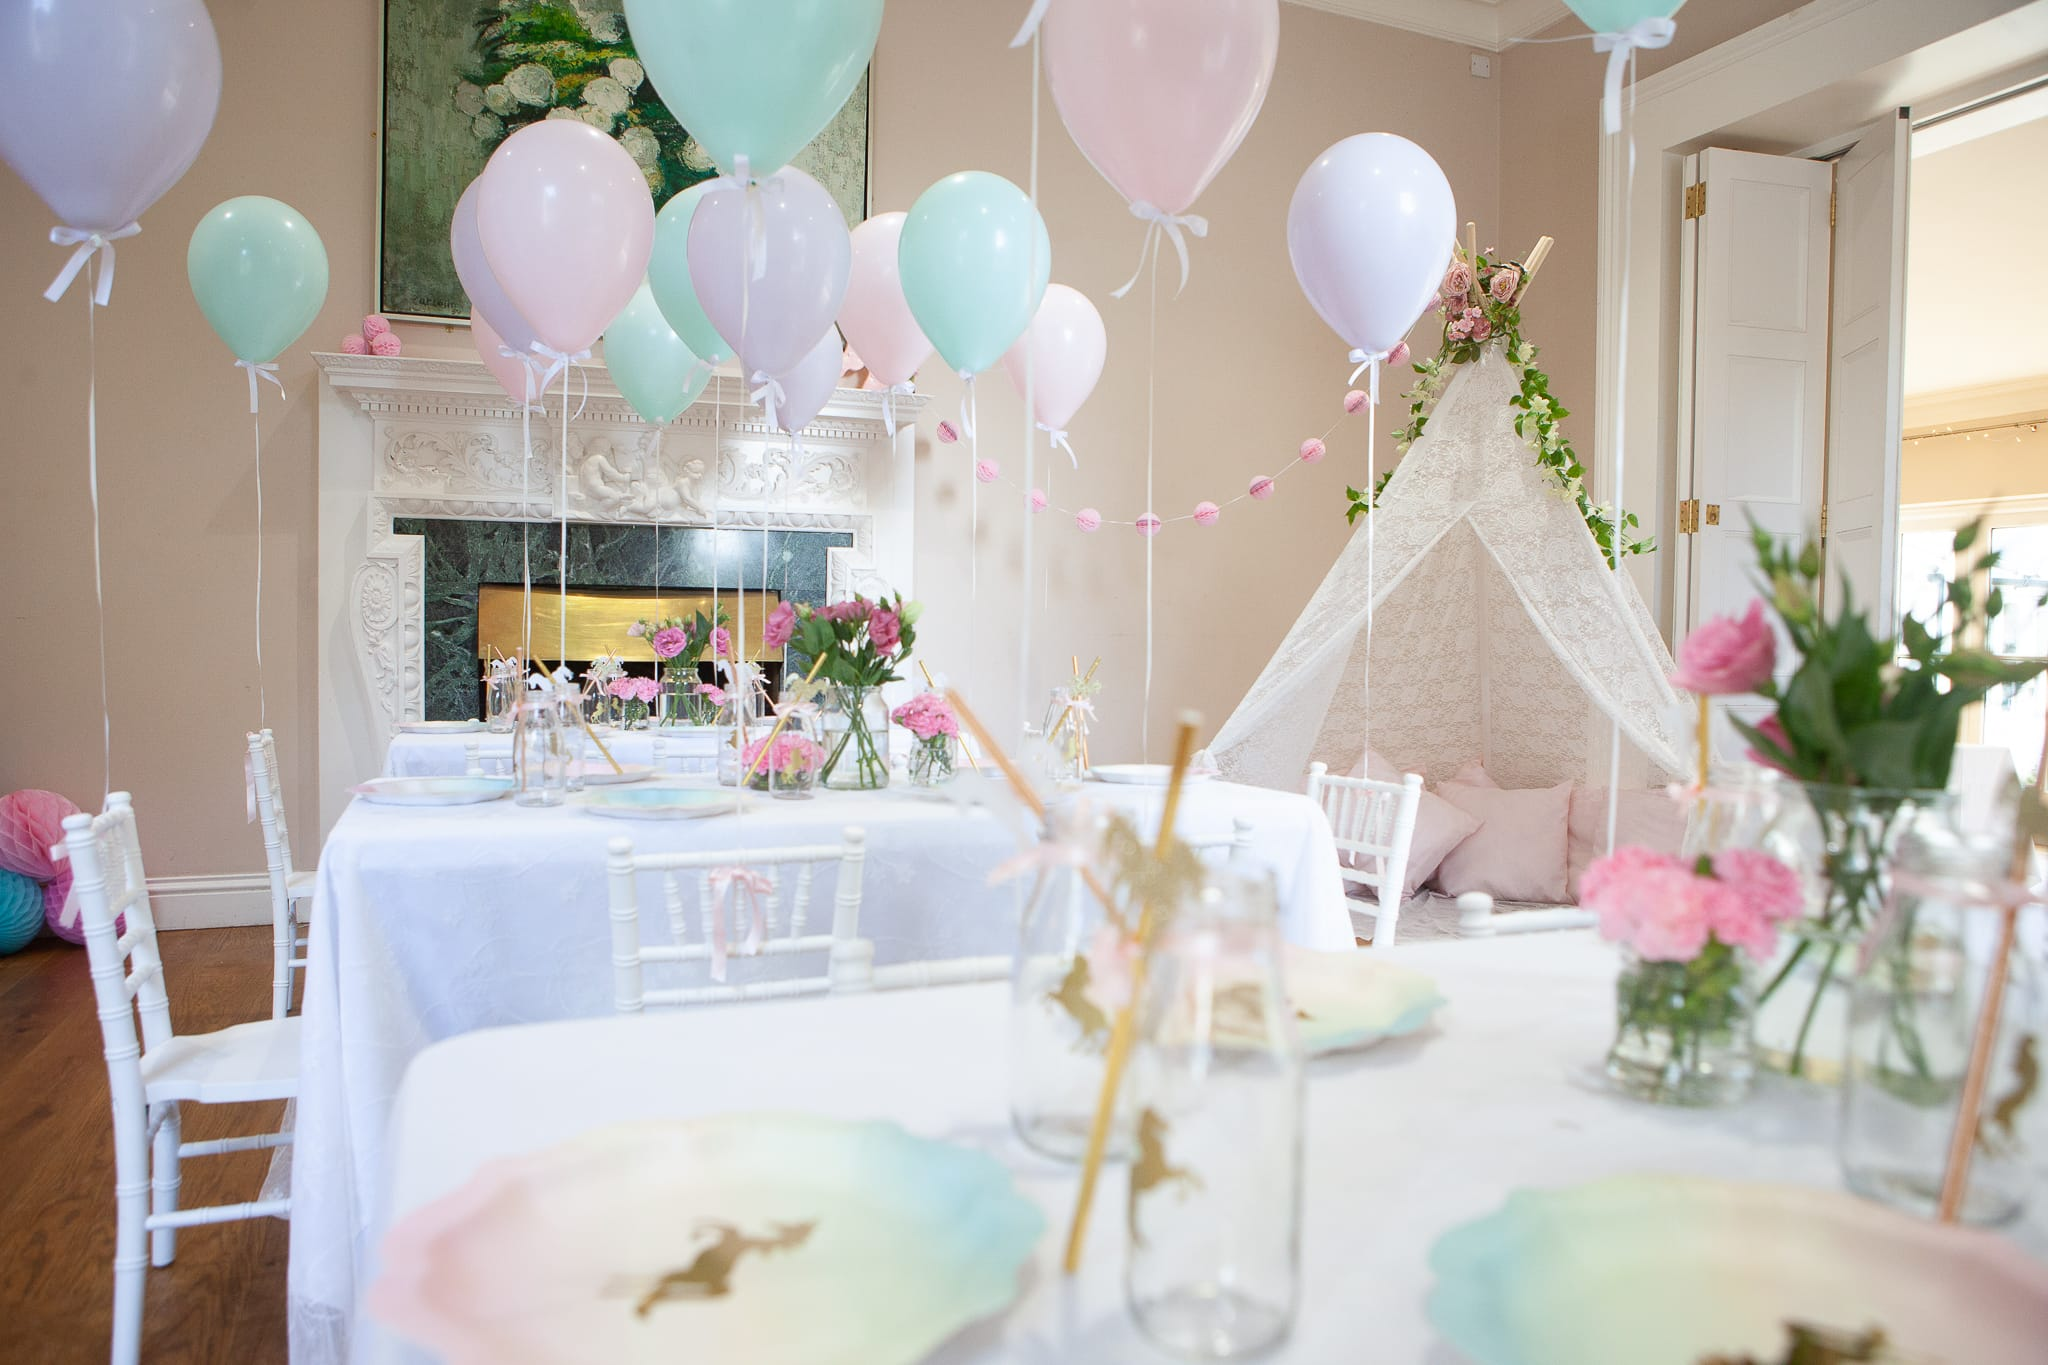 Room layout for children's party